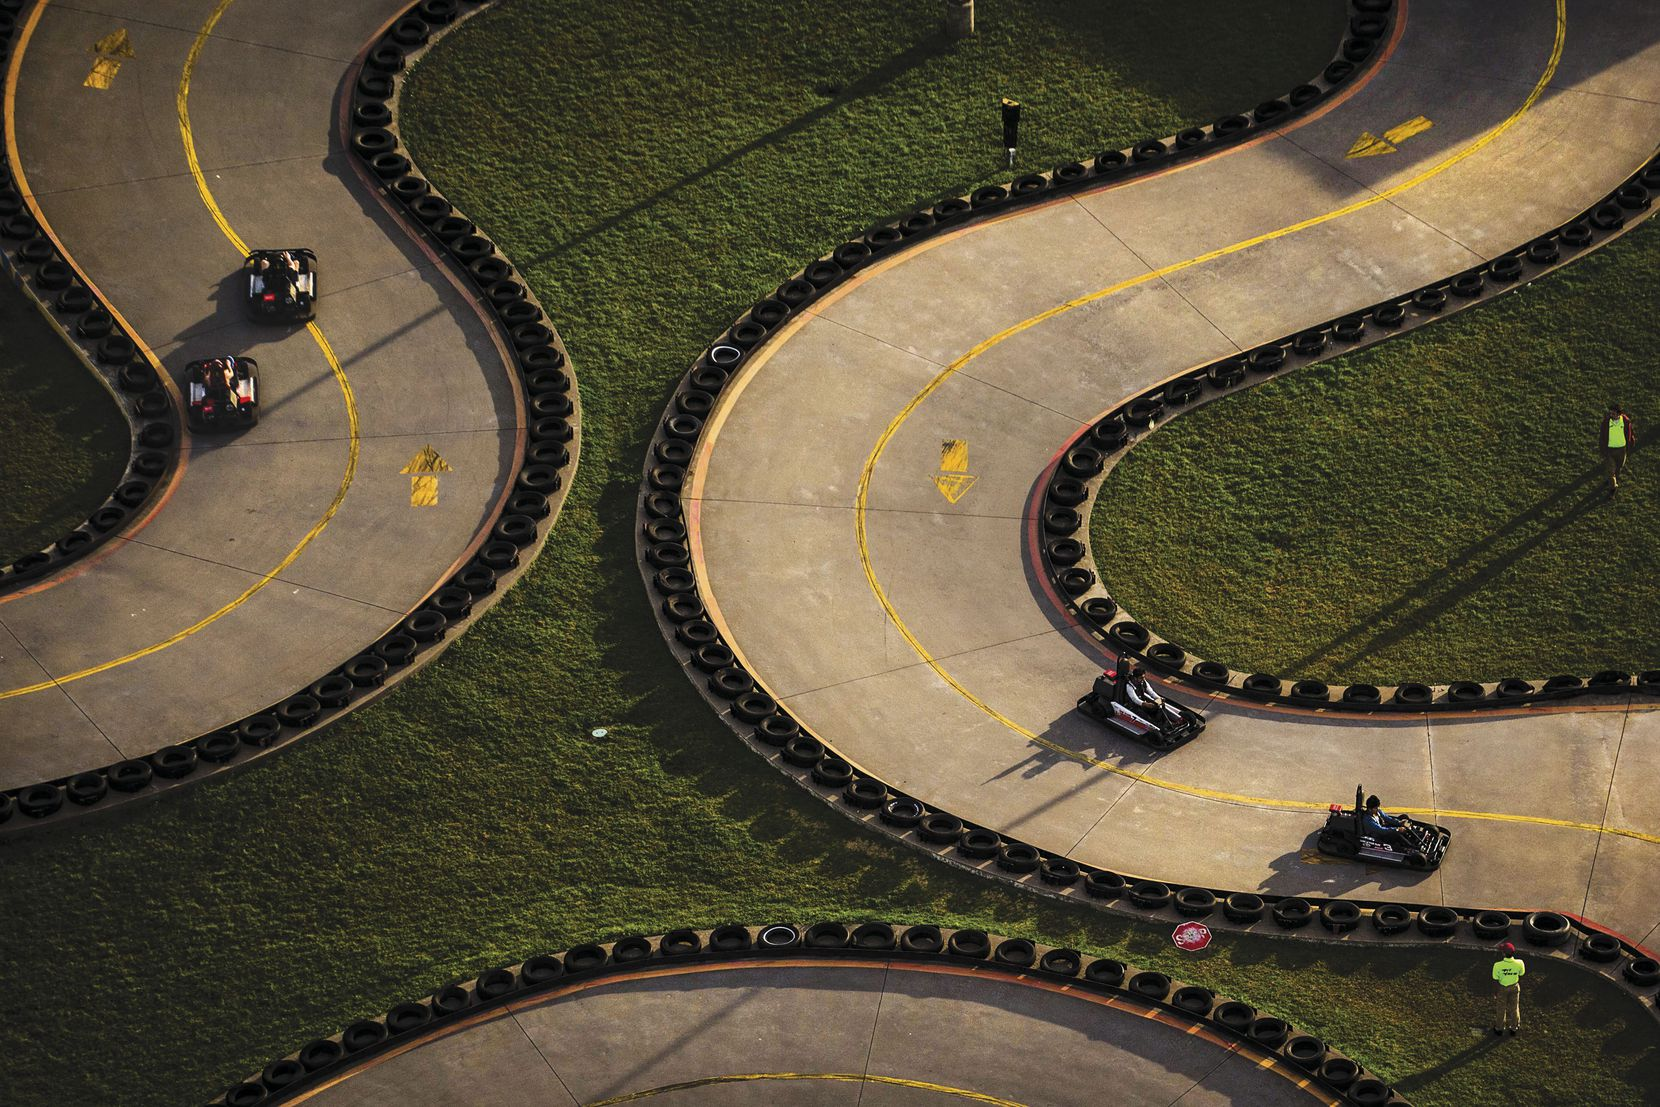 Go-kart drivers zip around the track at Zone Action Park in Lewisville.